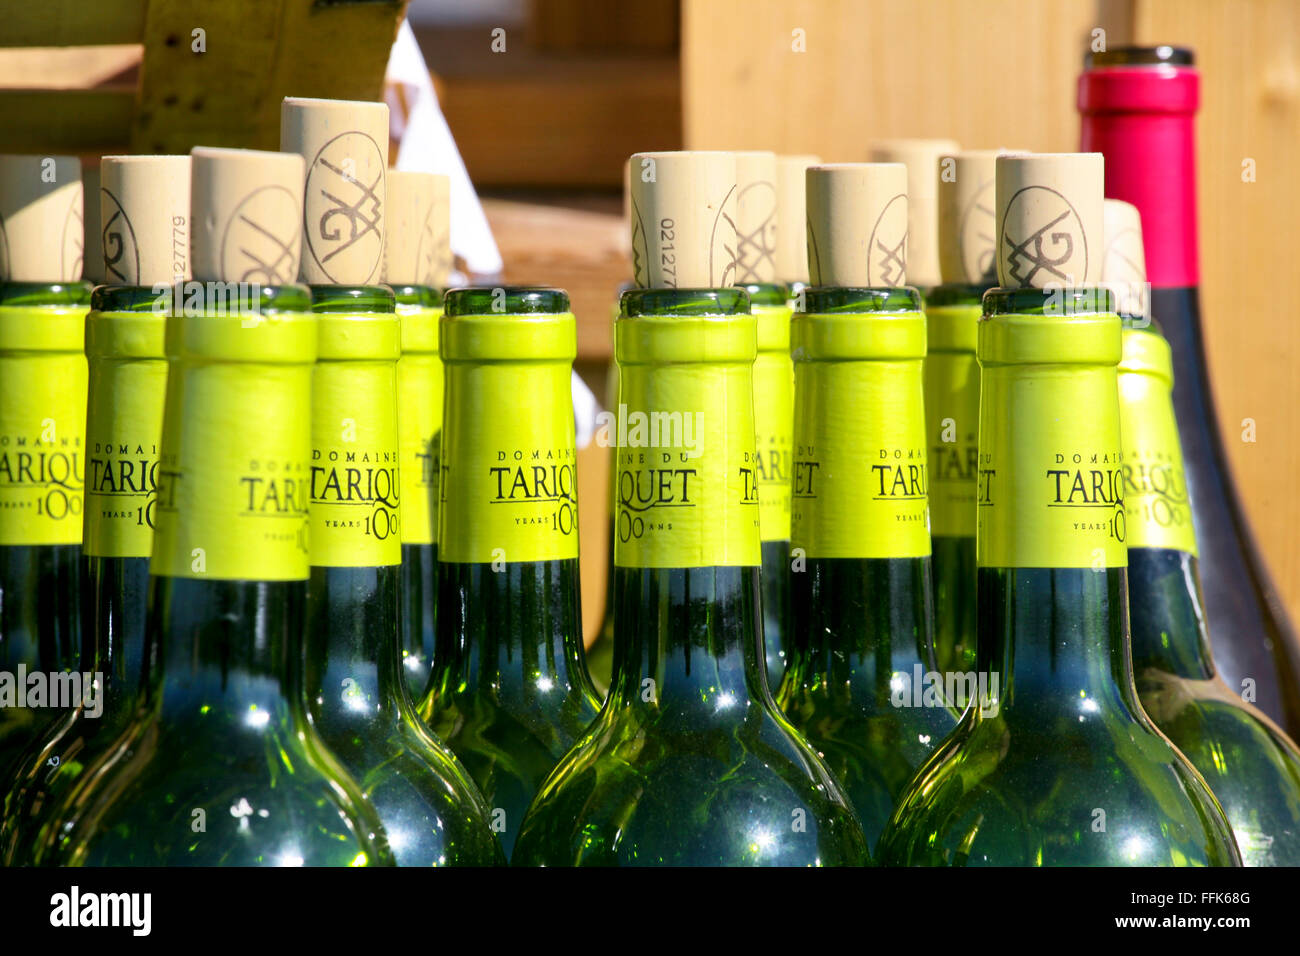 Empty bottles of  Tariquet wine , France Stock Photo